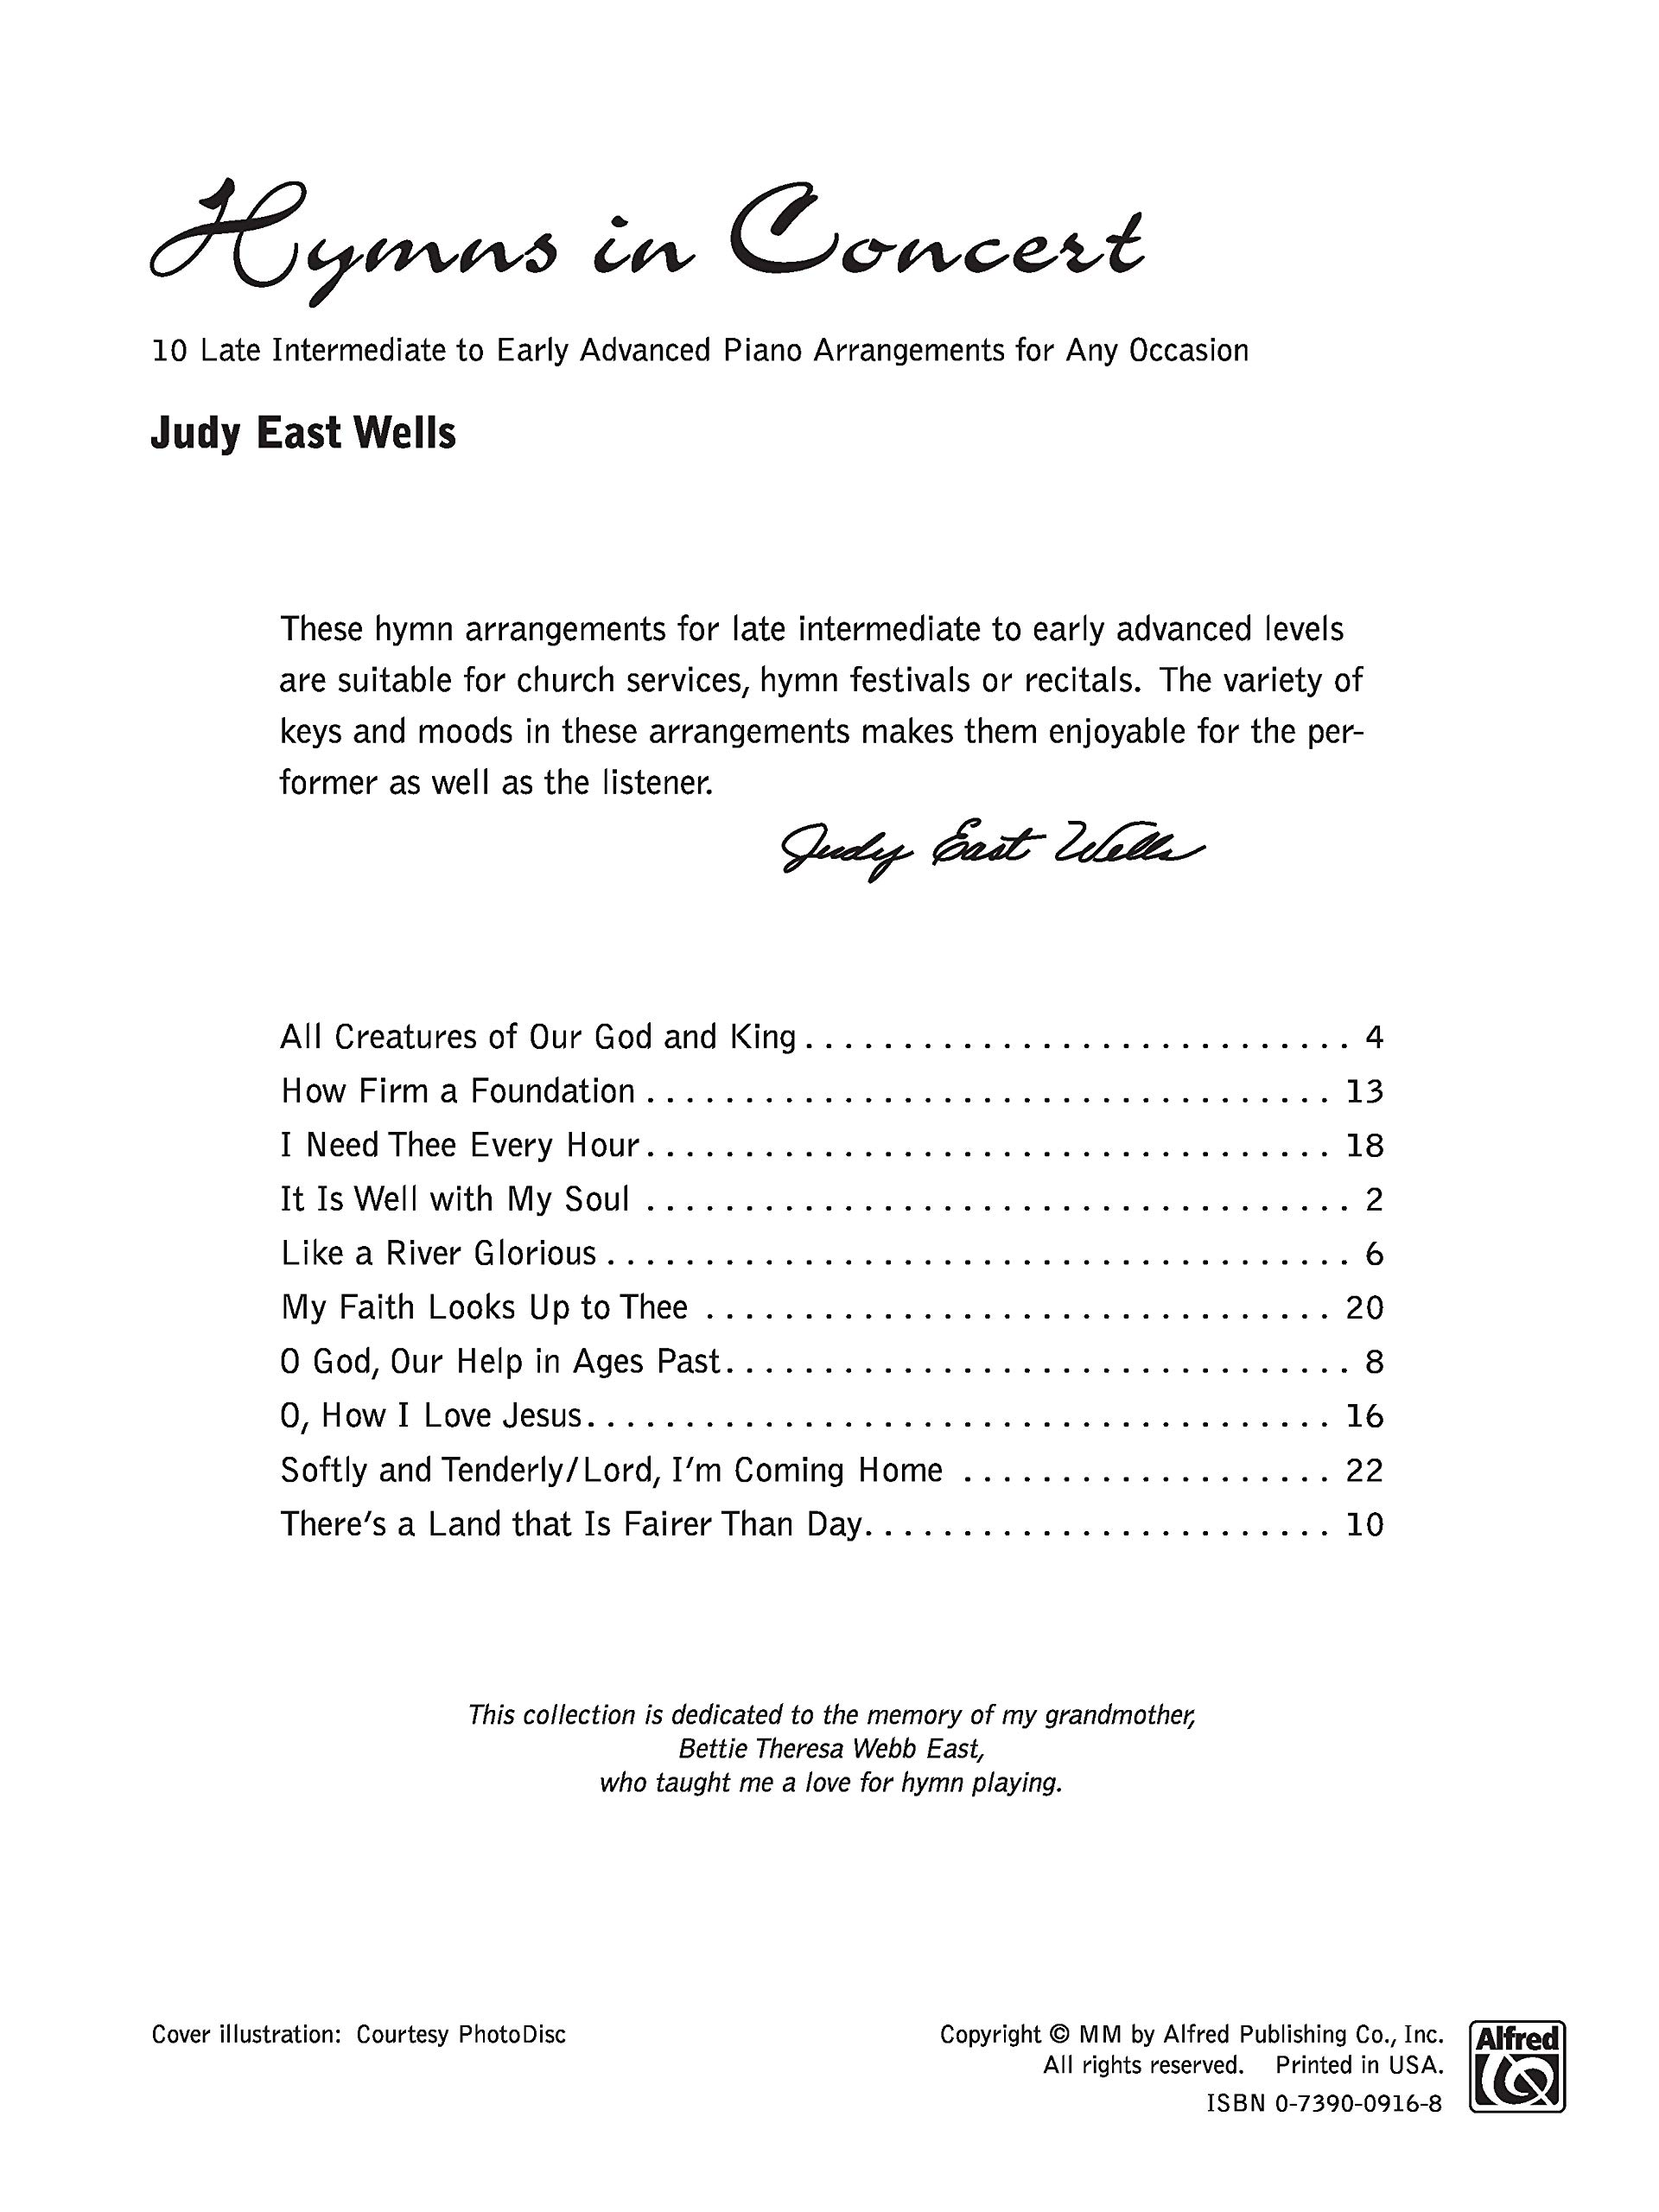 Hymns In Concert 10 Late Intermediate To Early Advanced Piano Arrangements For Any Occasion Wells Judy East 9780739009161 Amazon Com Books